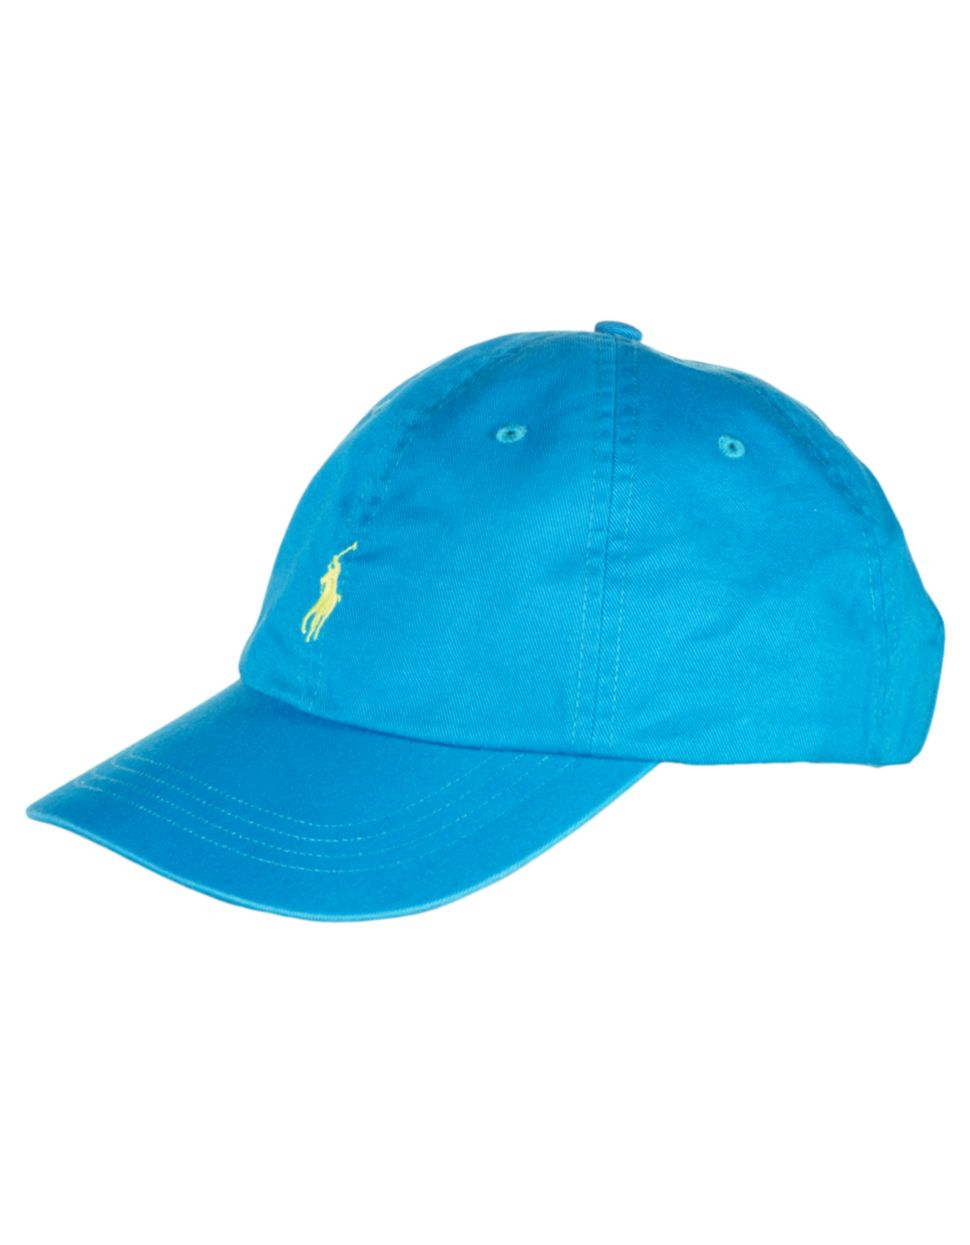 polo ralph lauren classic chino sports cap in blue lyst. Black Bedroom Furniture Sets. Home Design Ideas